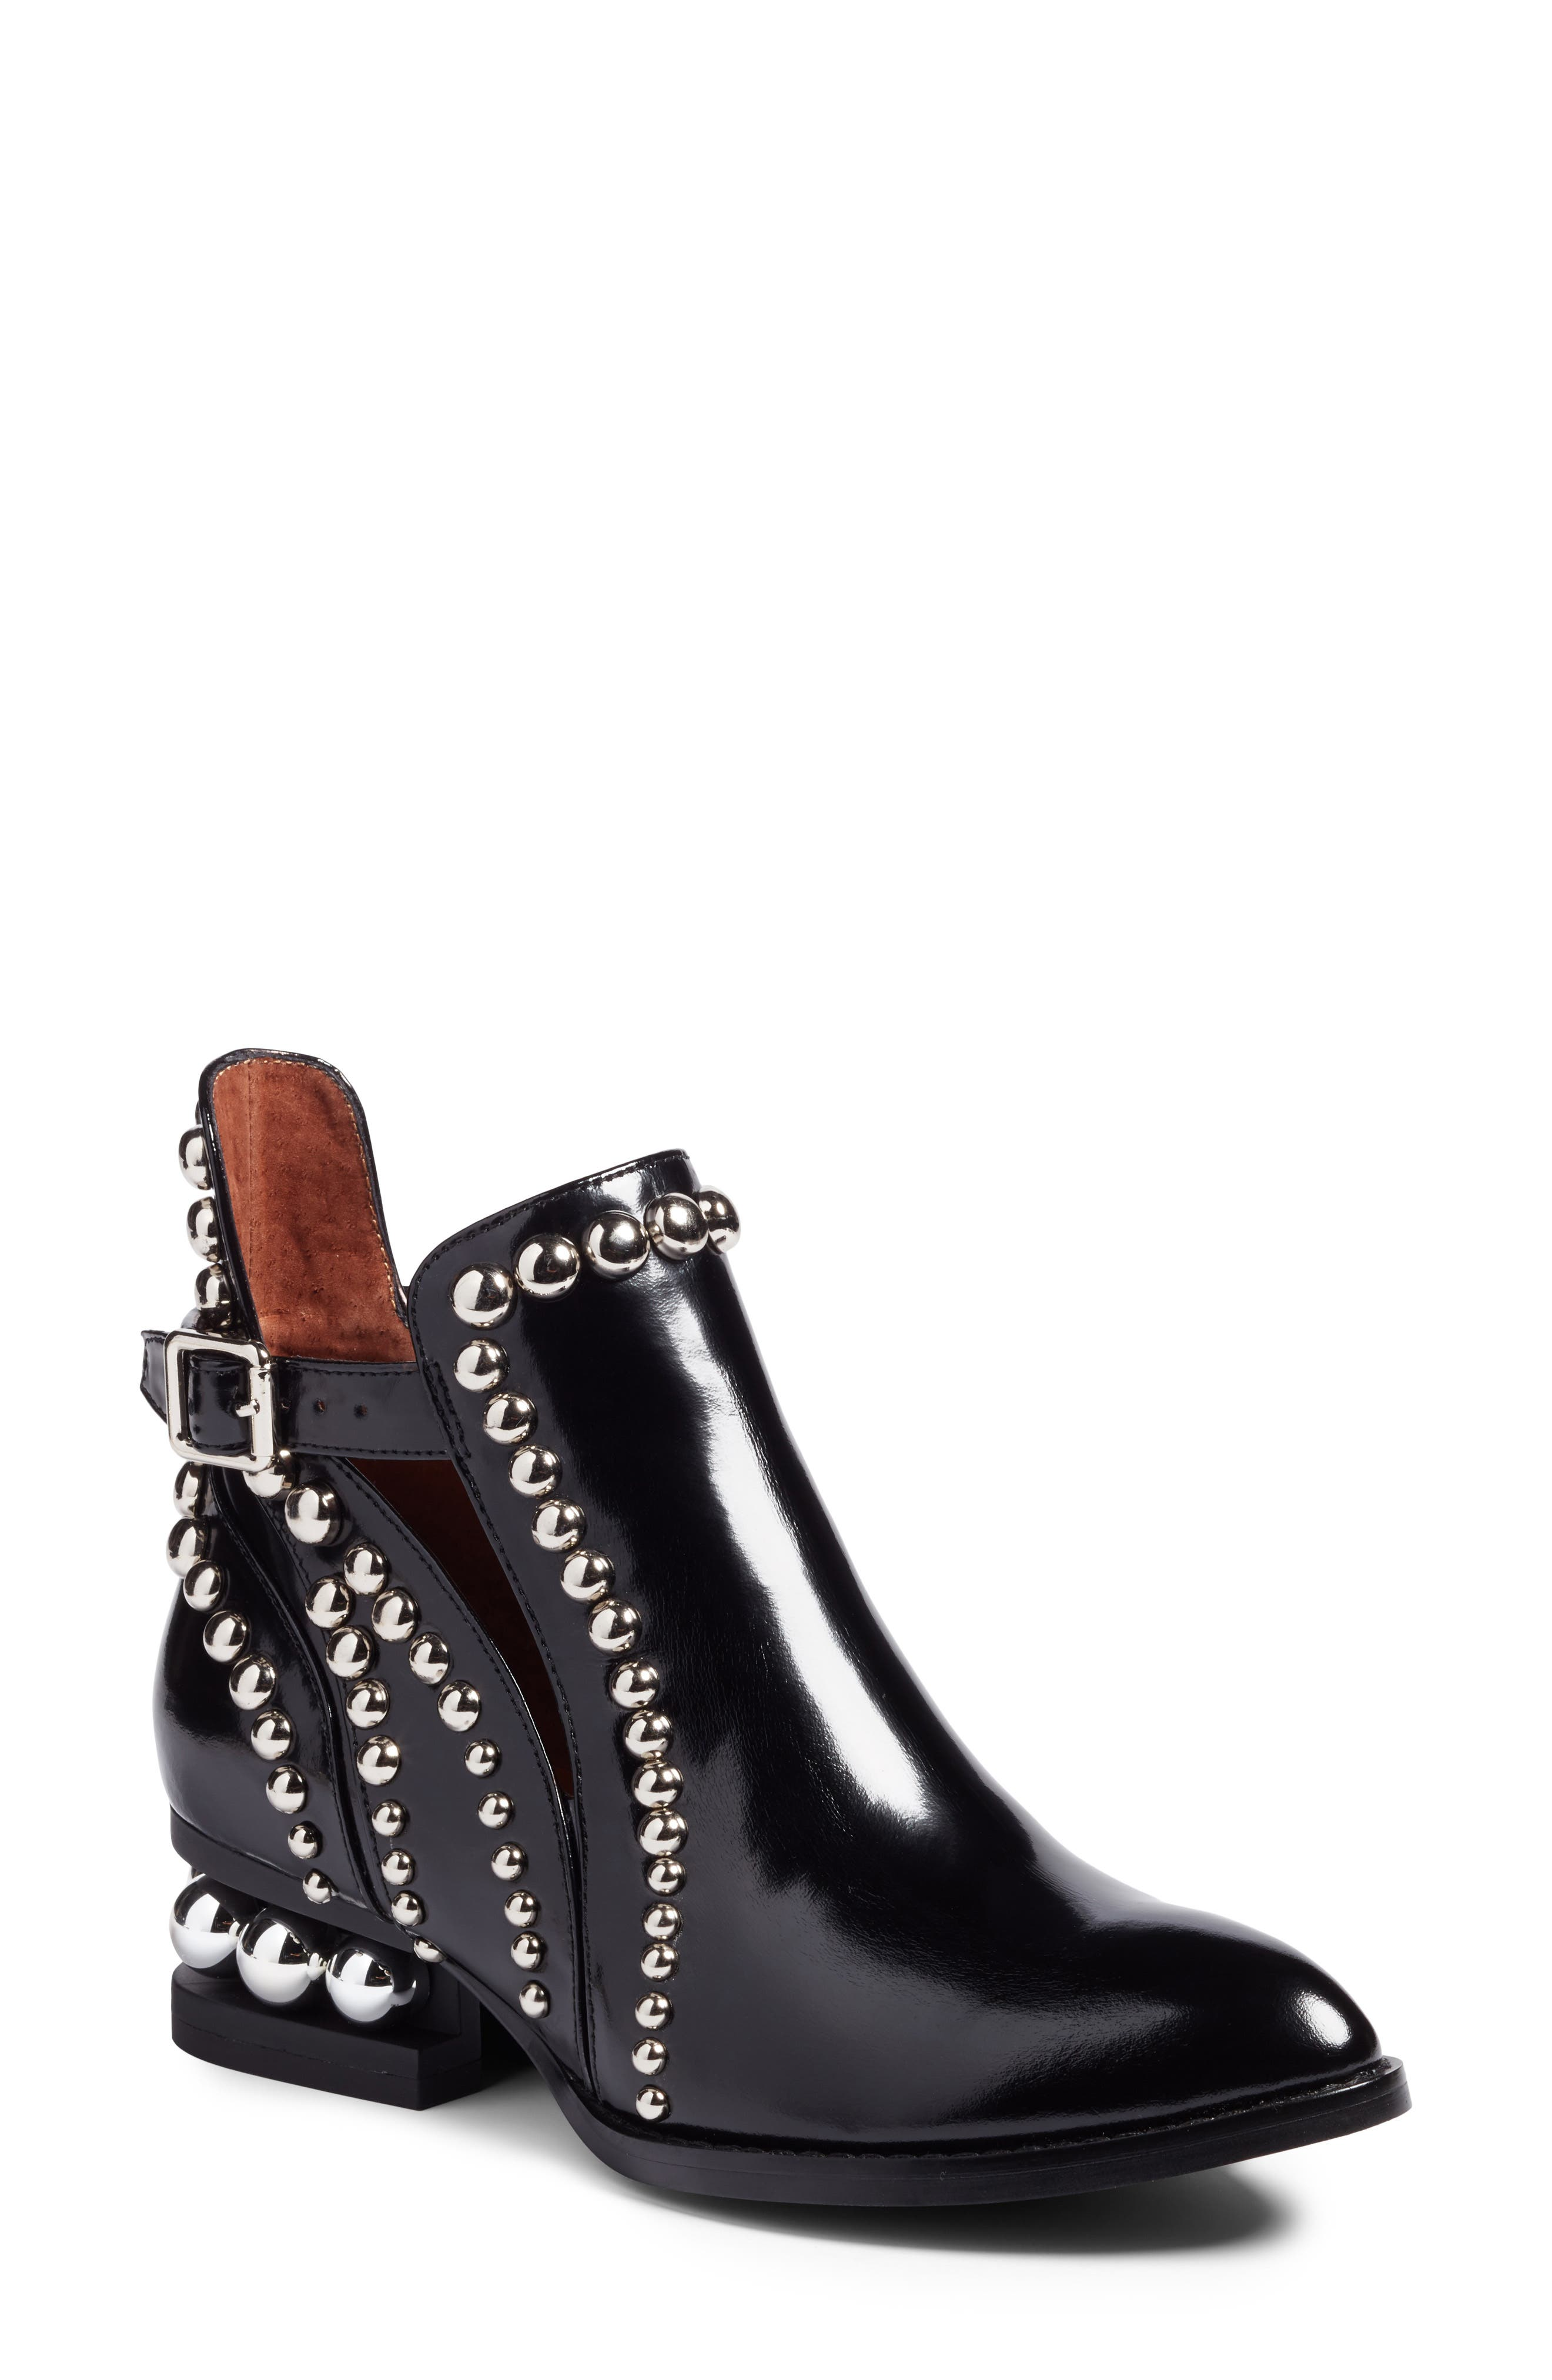 Jeffrey Campbell 2) WoHommes 's Low Heel (1 2) Campbell Shoes Nordstrom 4a87ed